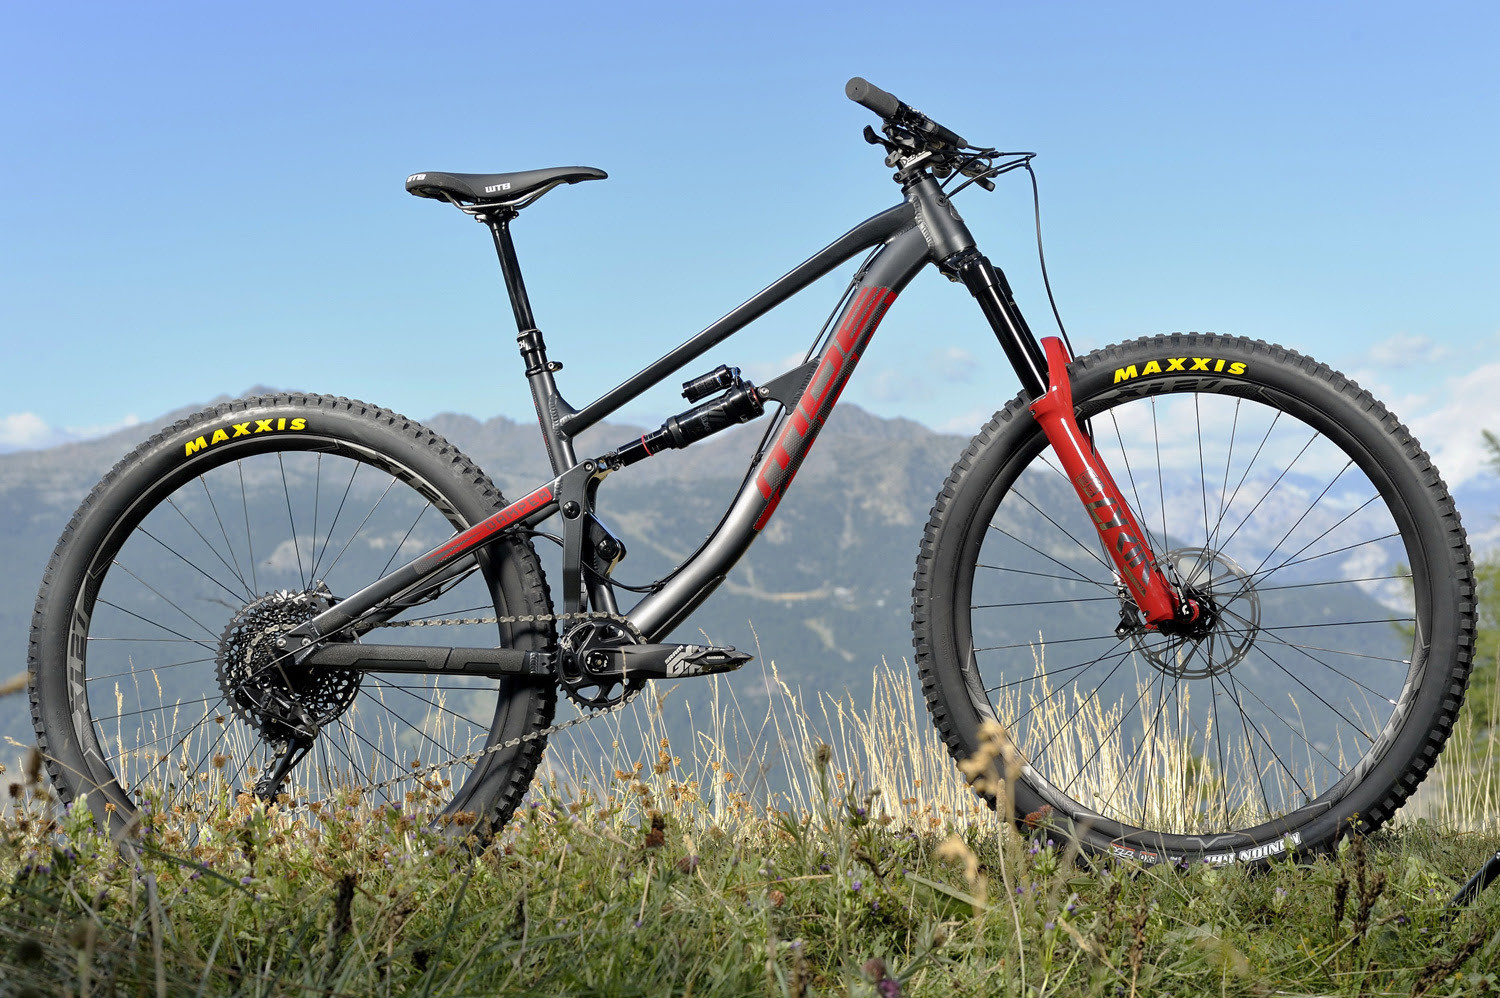 Versatile, Capable, Customizable: The All-New MDE Bikes Damper Is Here